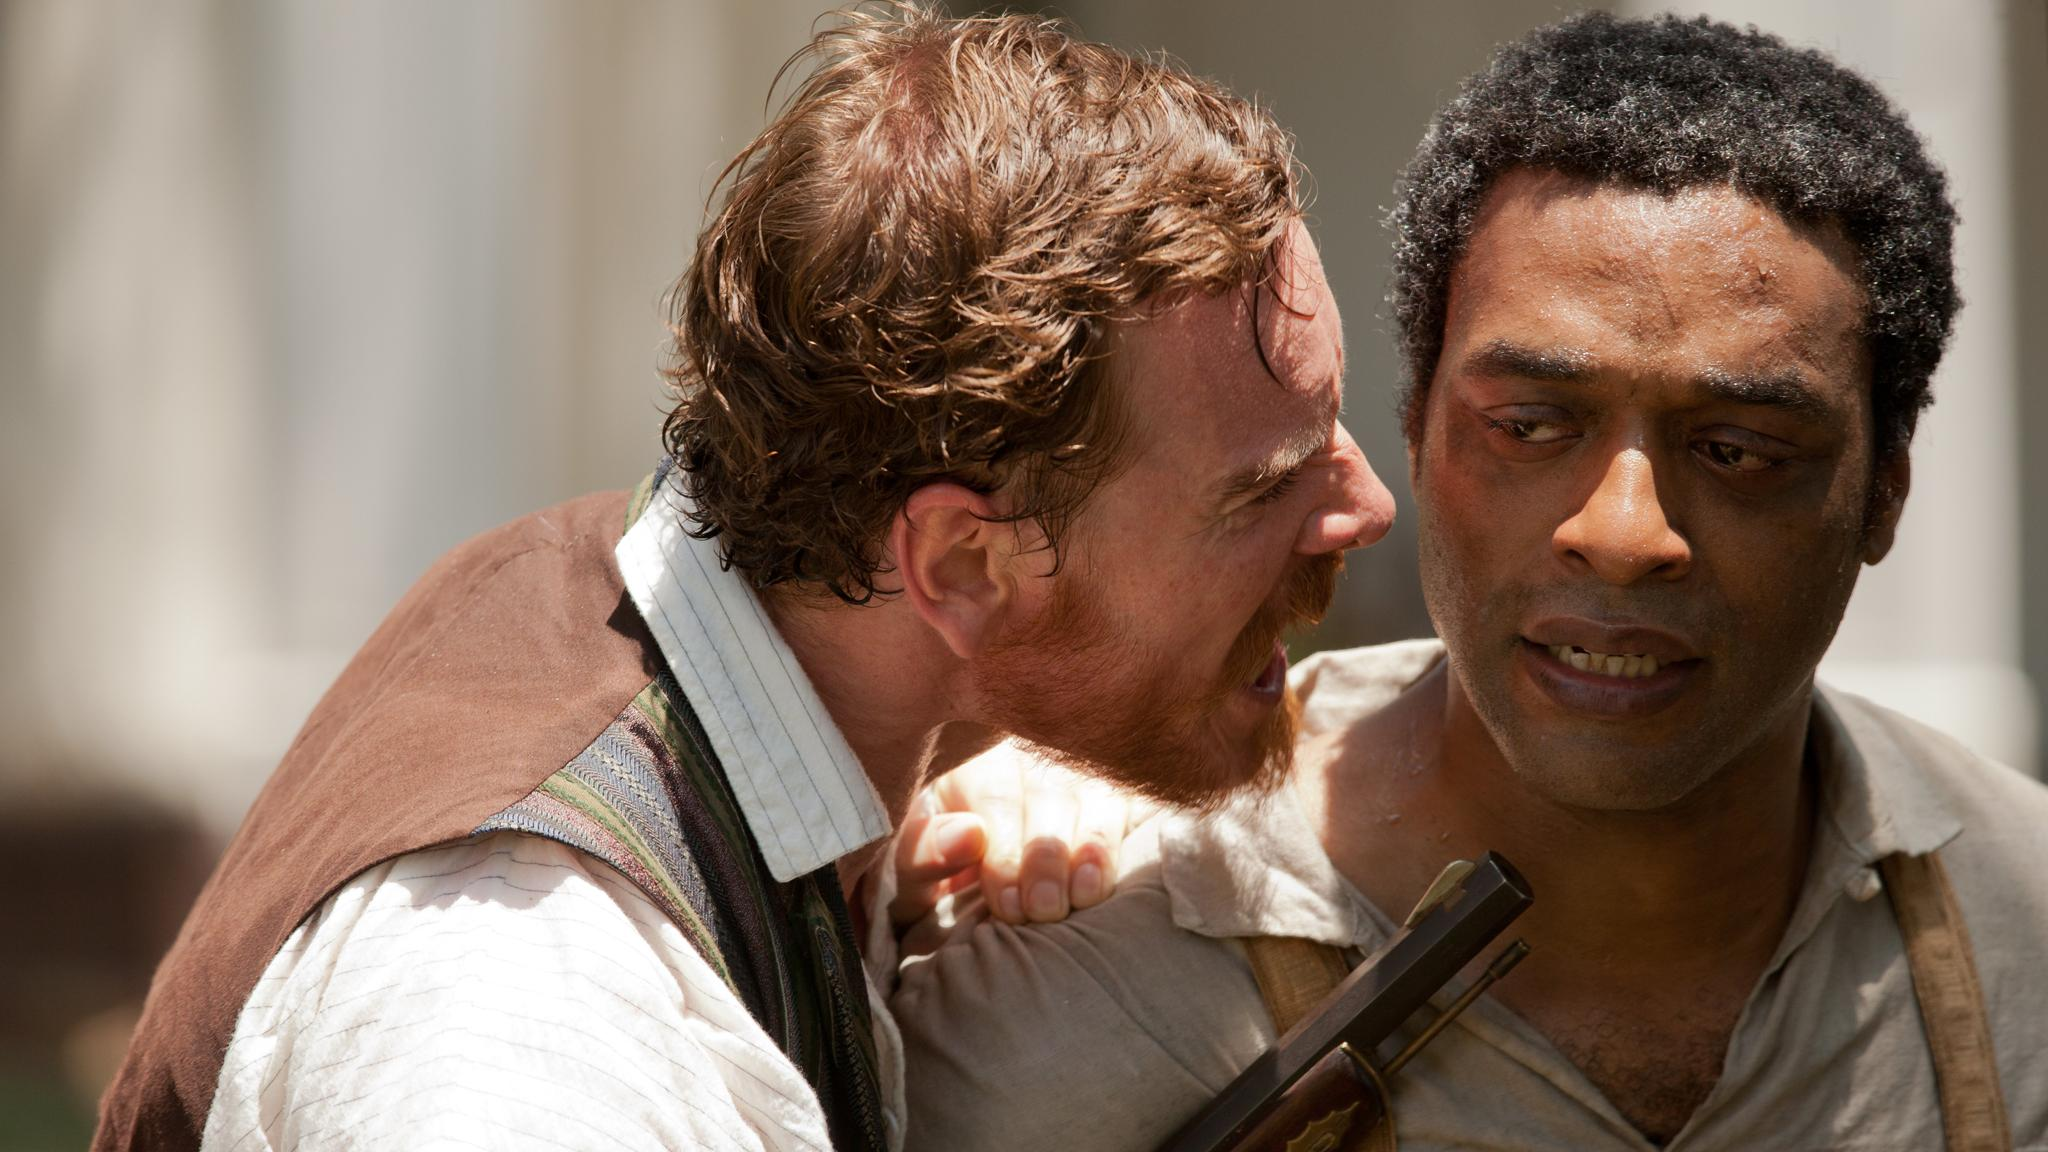 Film still from 12 Years a Slave